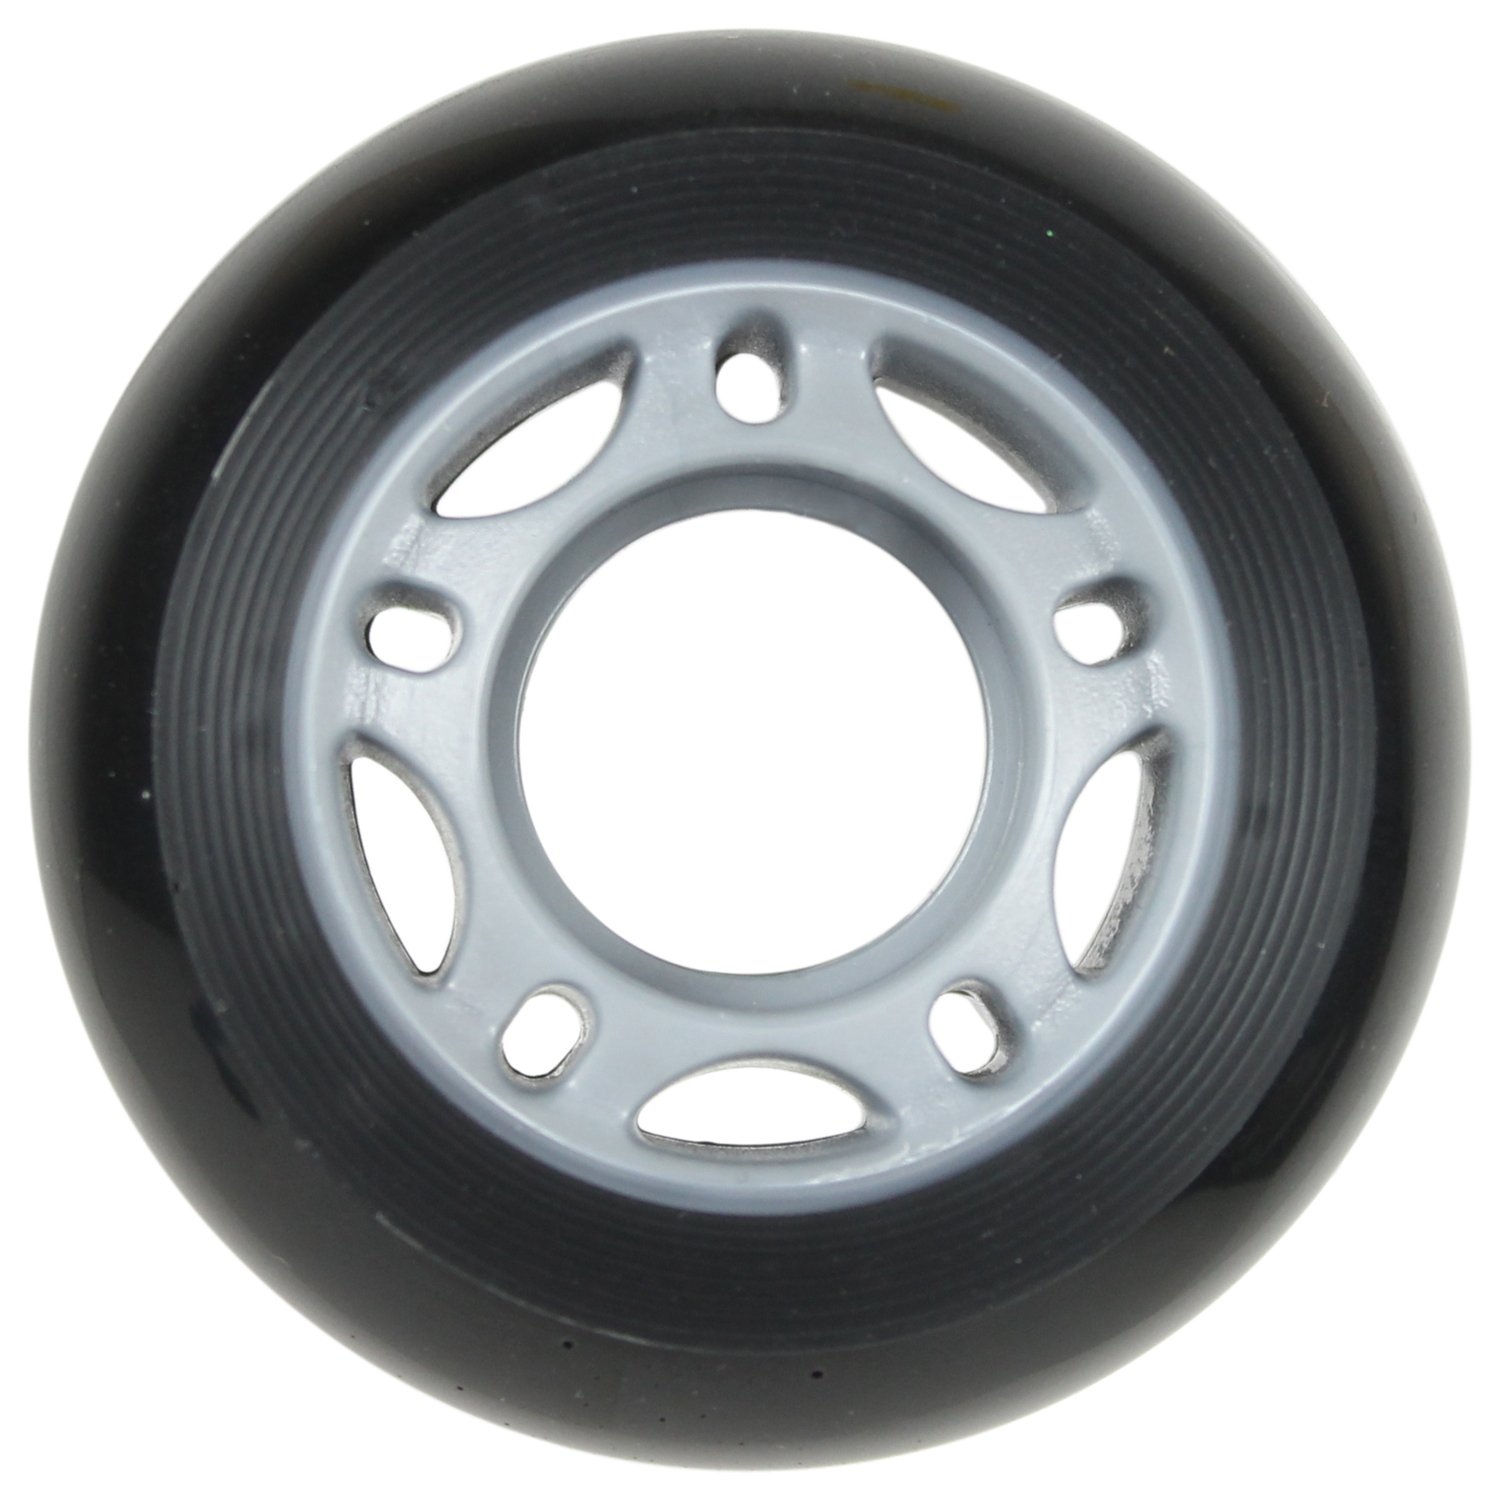 Players Choice Roller Hockey Goalie Wheels 60mm 82a Set Of 10 For